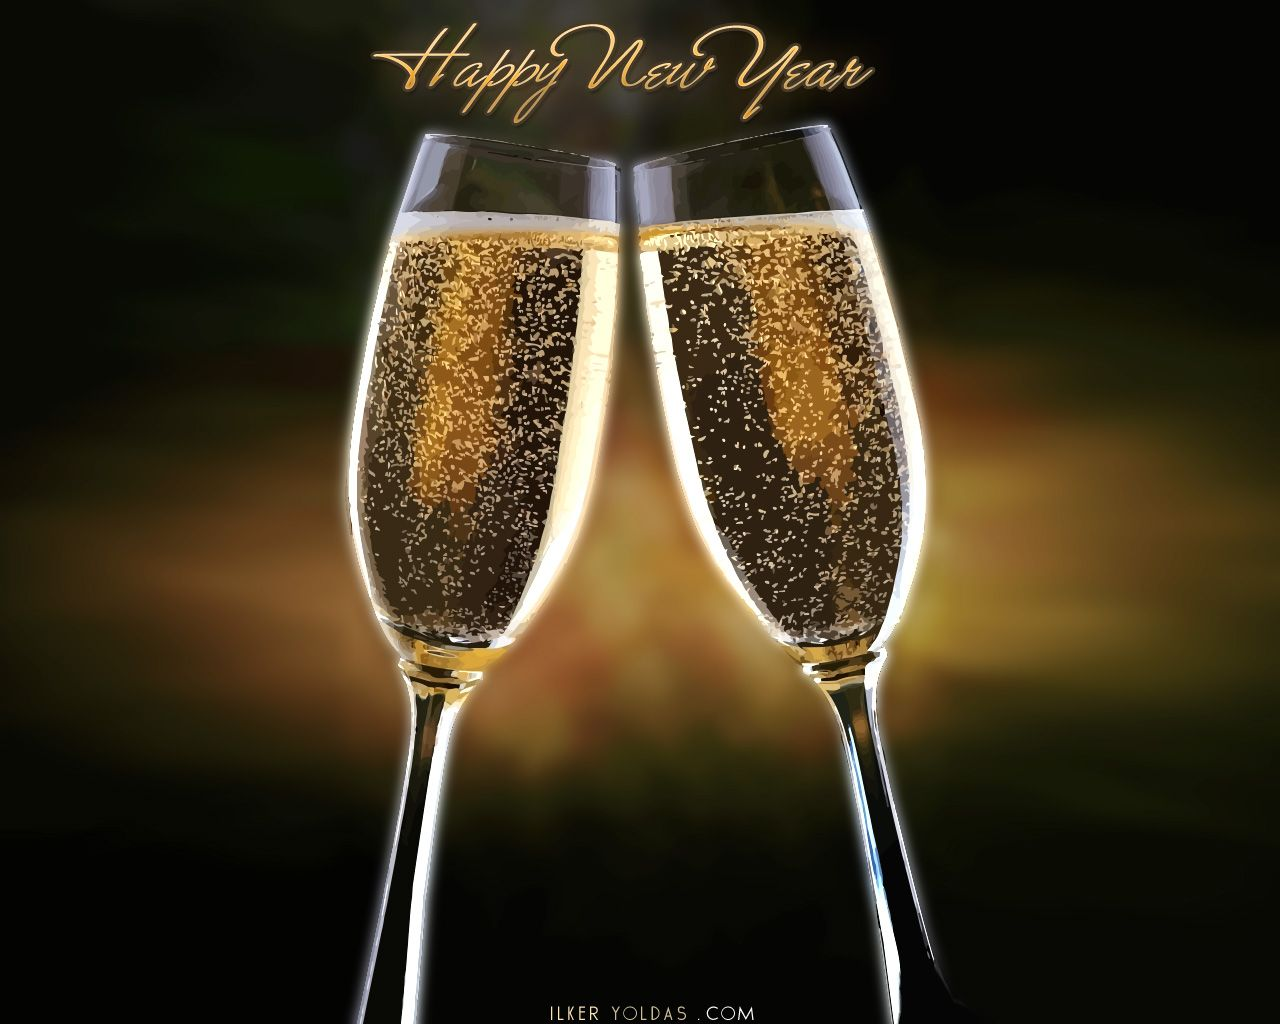 New Years Eve Party Supplies Happy New Year Wallpaper New Year Wallpaper Happy New Year Images